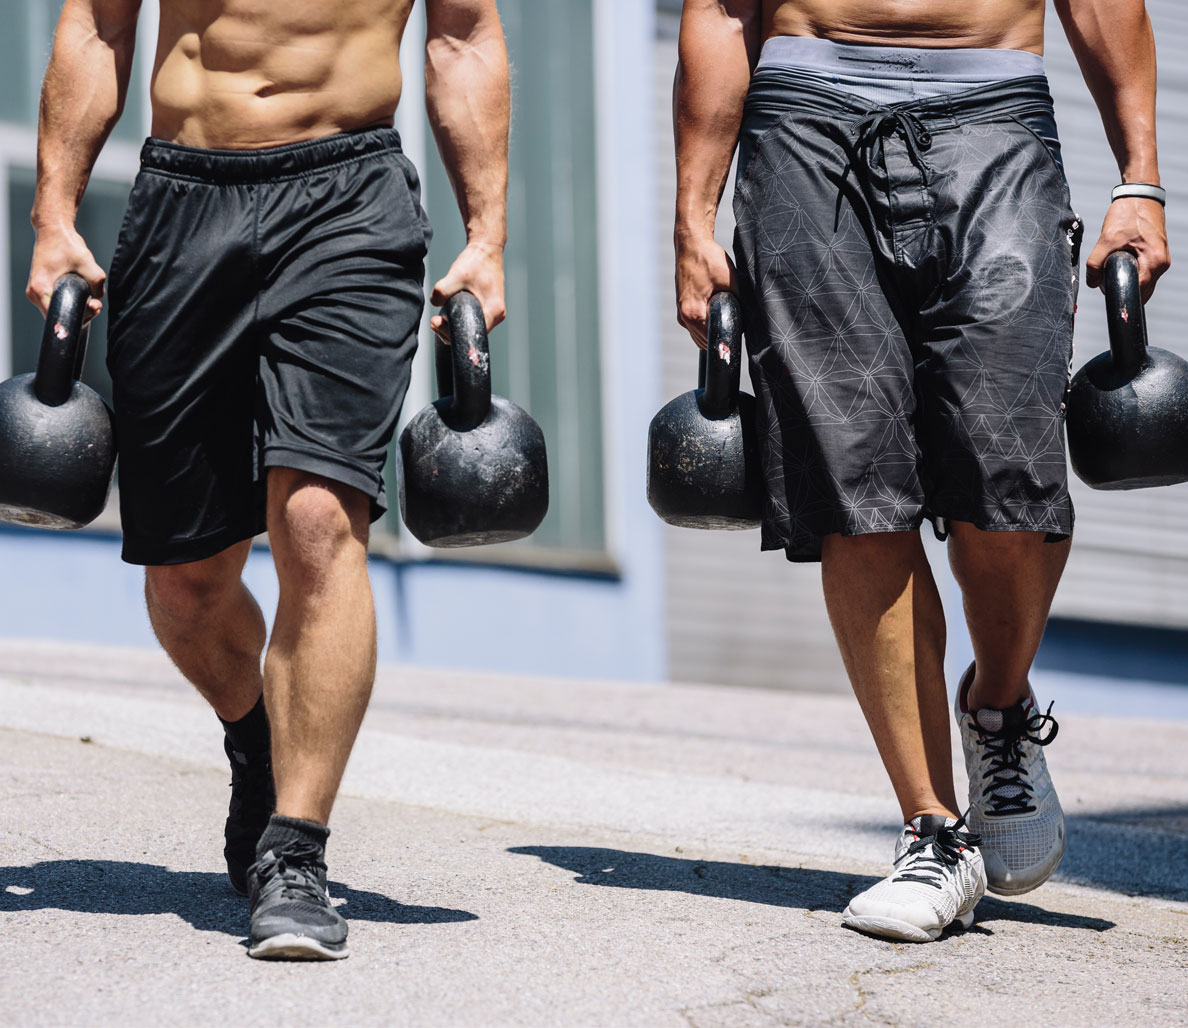 3 ways to add strongman training into your workout